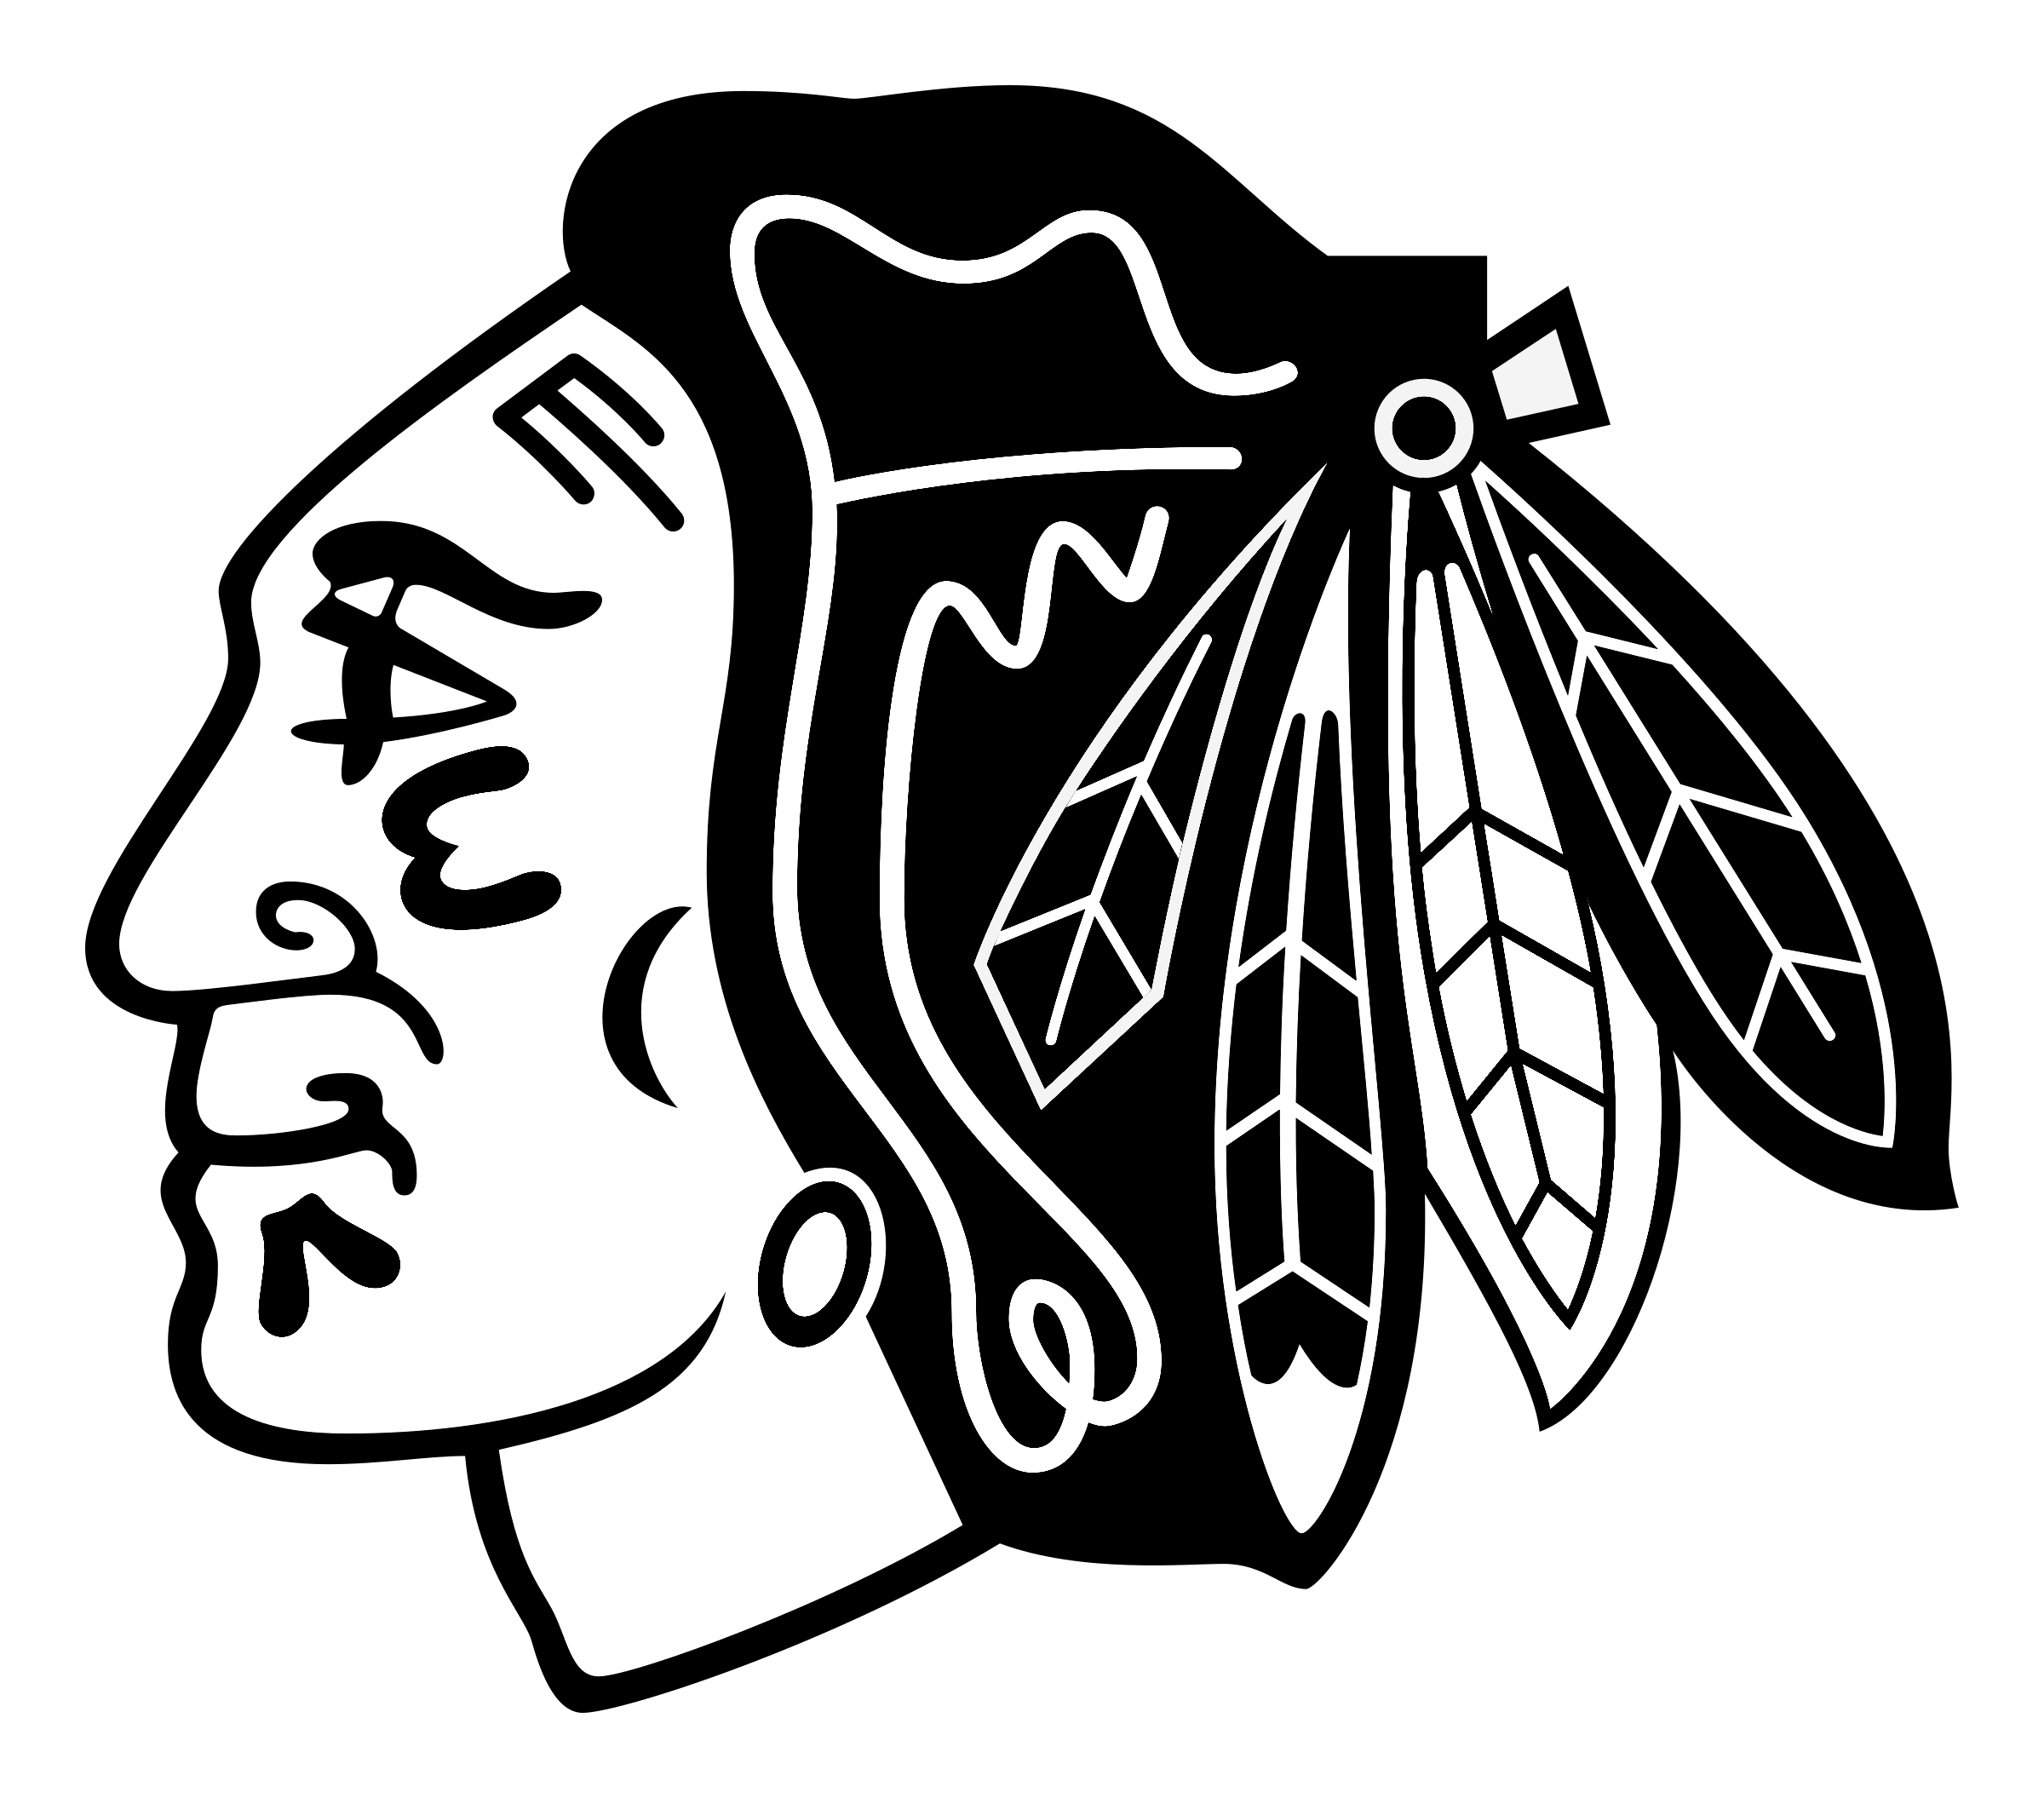 Logo png transparent vector. Blackhawks svg picture black and white download